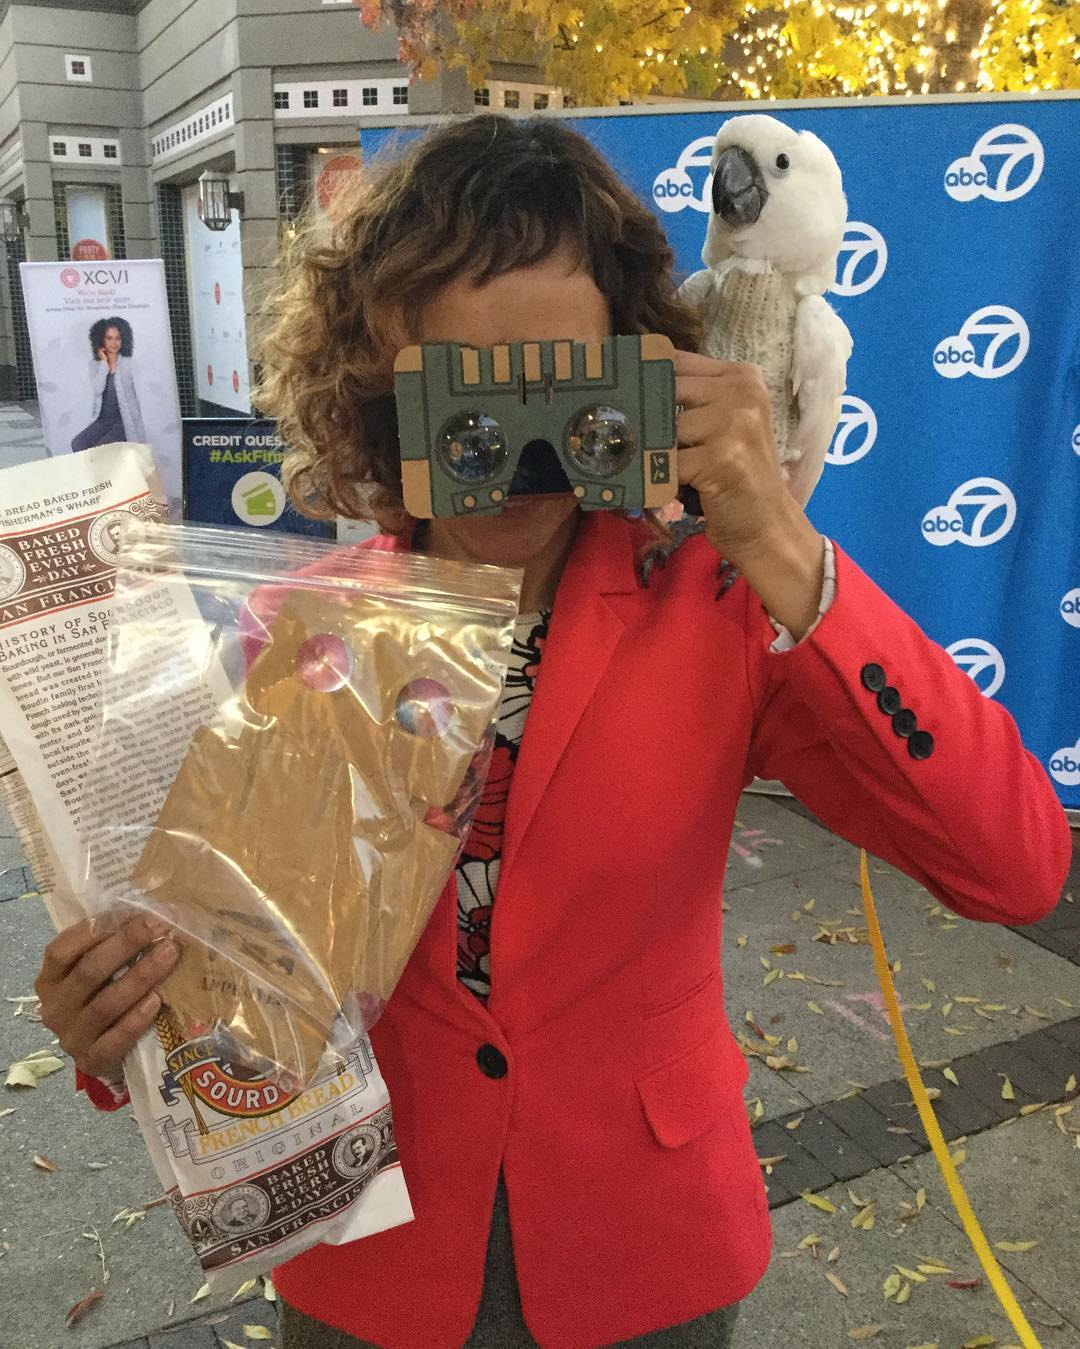 <div class='meta'><div class='origin-logo' data-origin='none'></div><span class='caption-text' data-credit='KGO-TV'>7 on Your Side's Michael Finney's Friday Free Stuff gave viewers a VR headset and coupons to Boudin's Bakery in San Francisco on Dec. 2, 2016.</span></div>